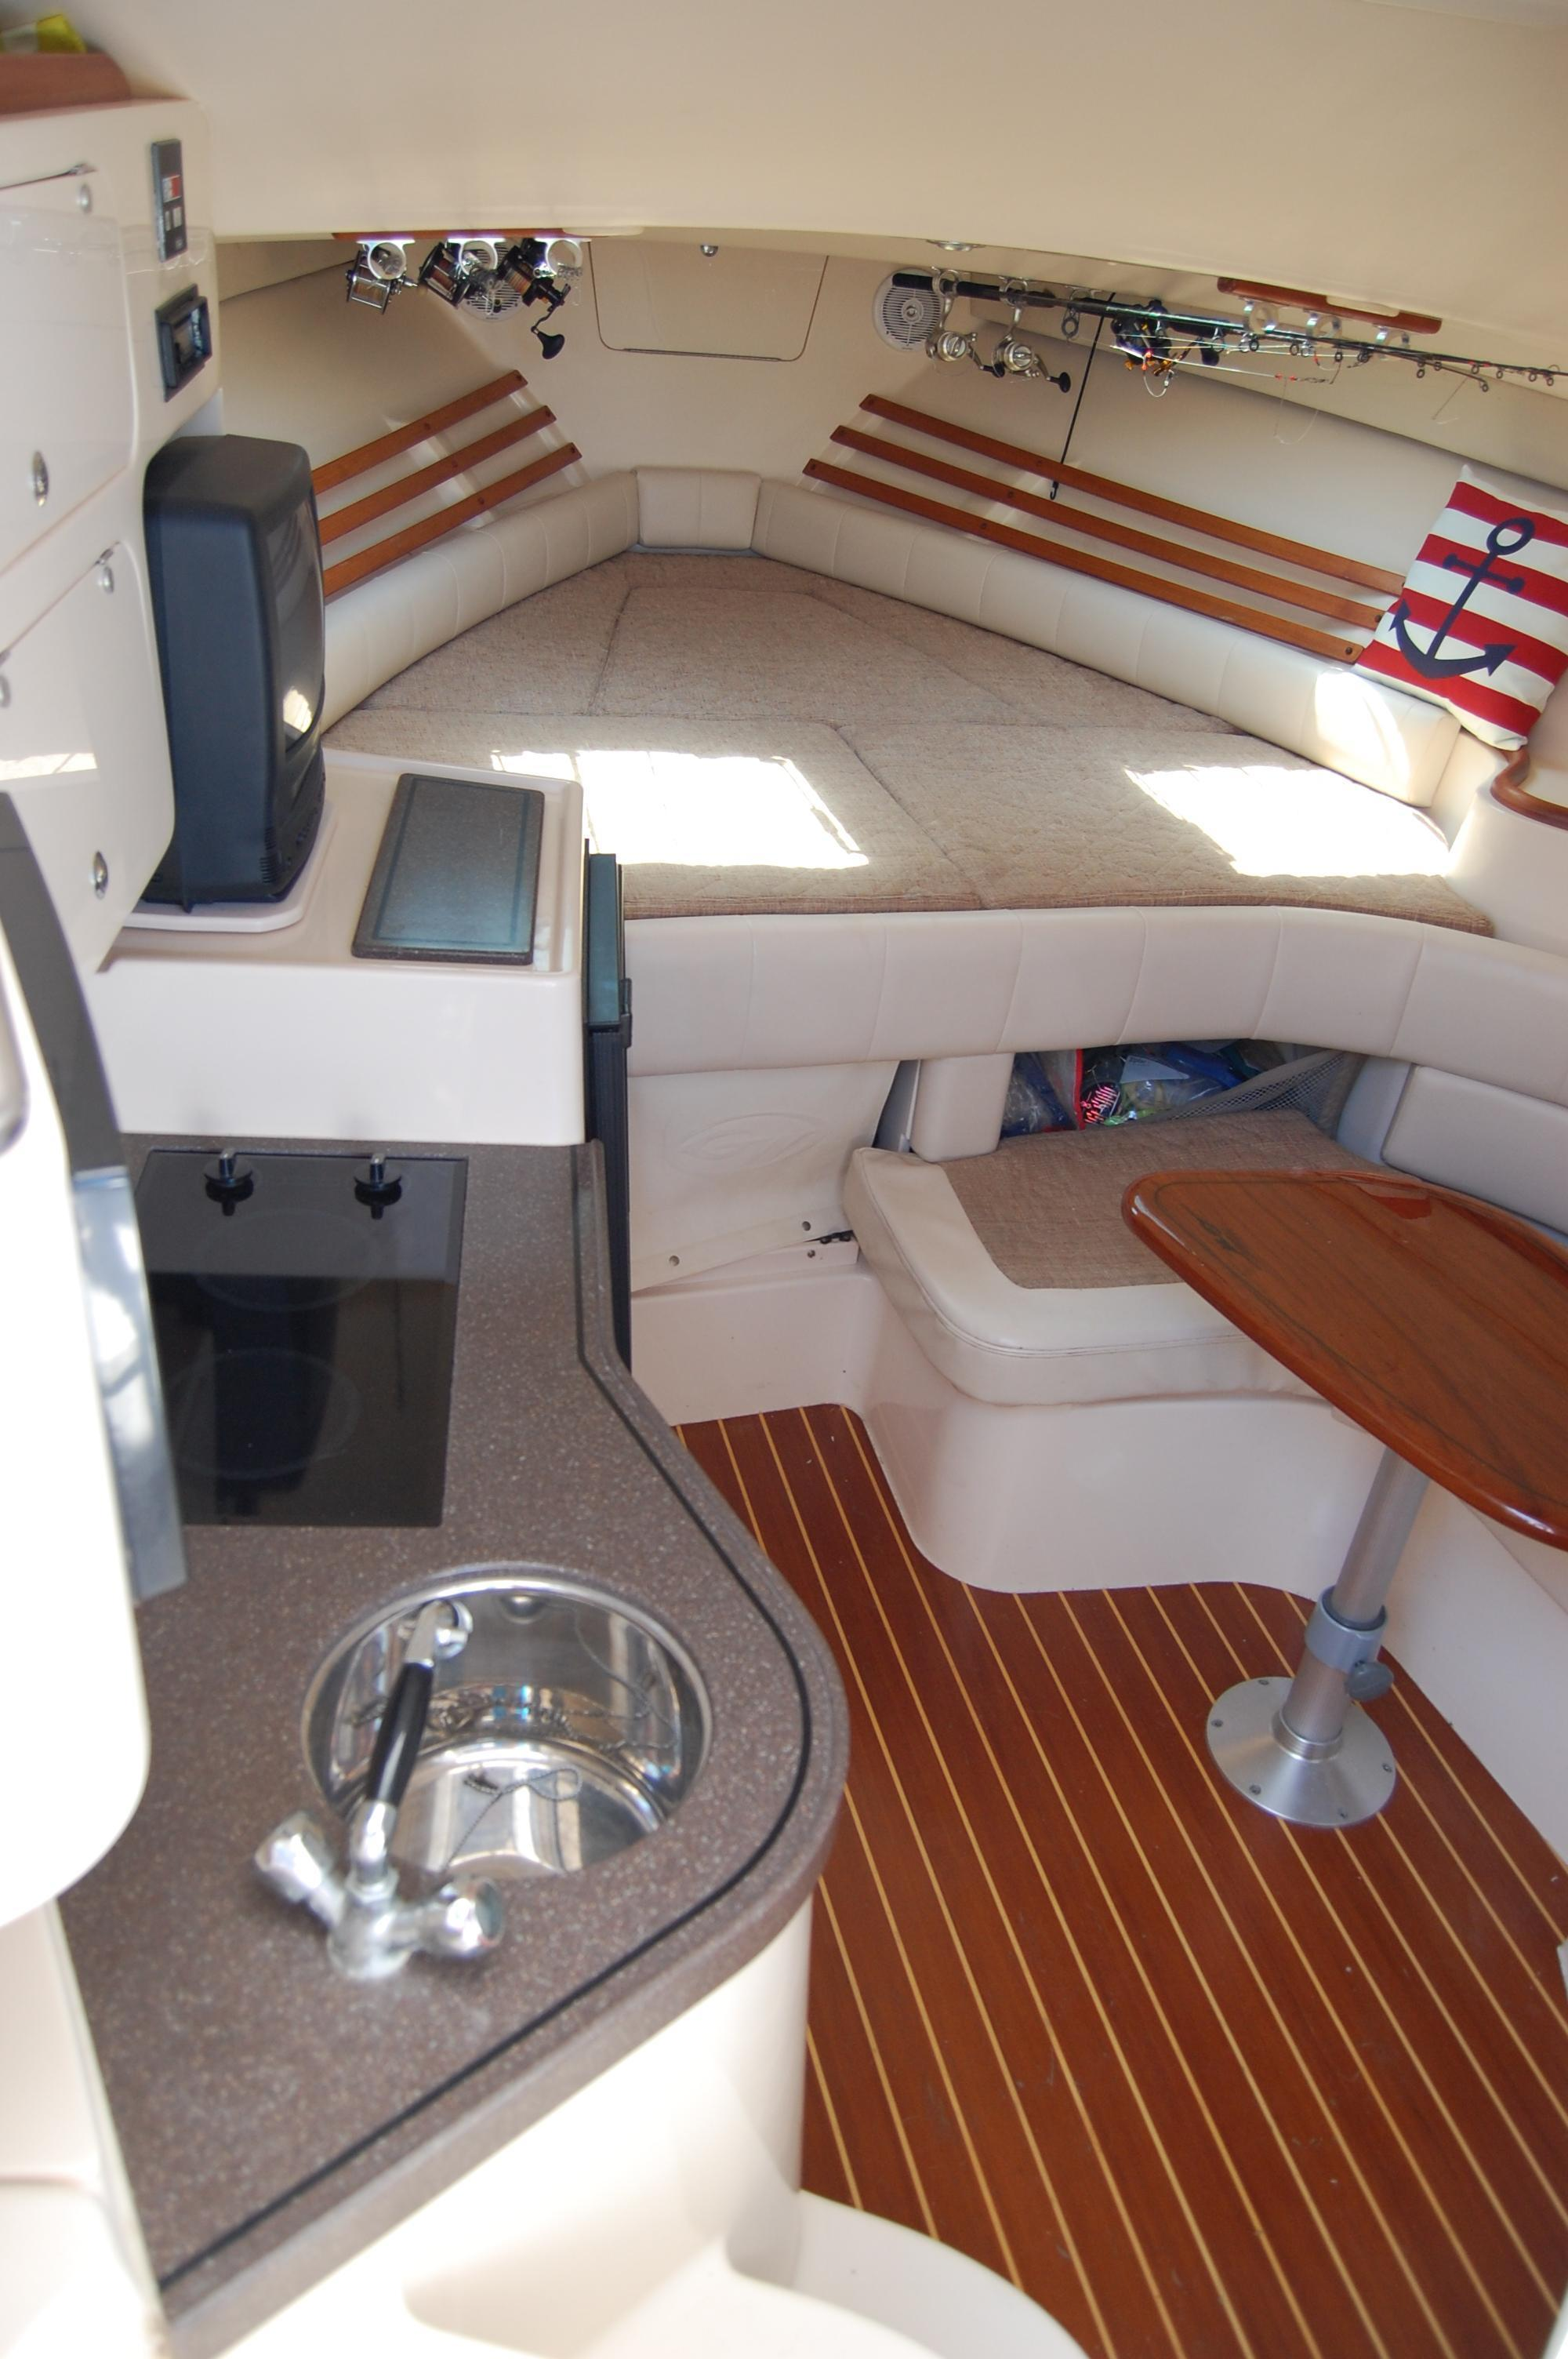 2002 Grady White 330 Express,  looking into the lower cabin